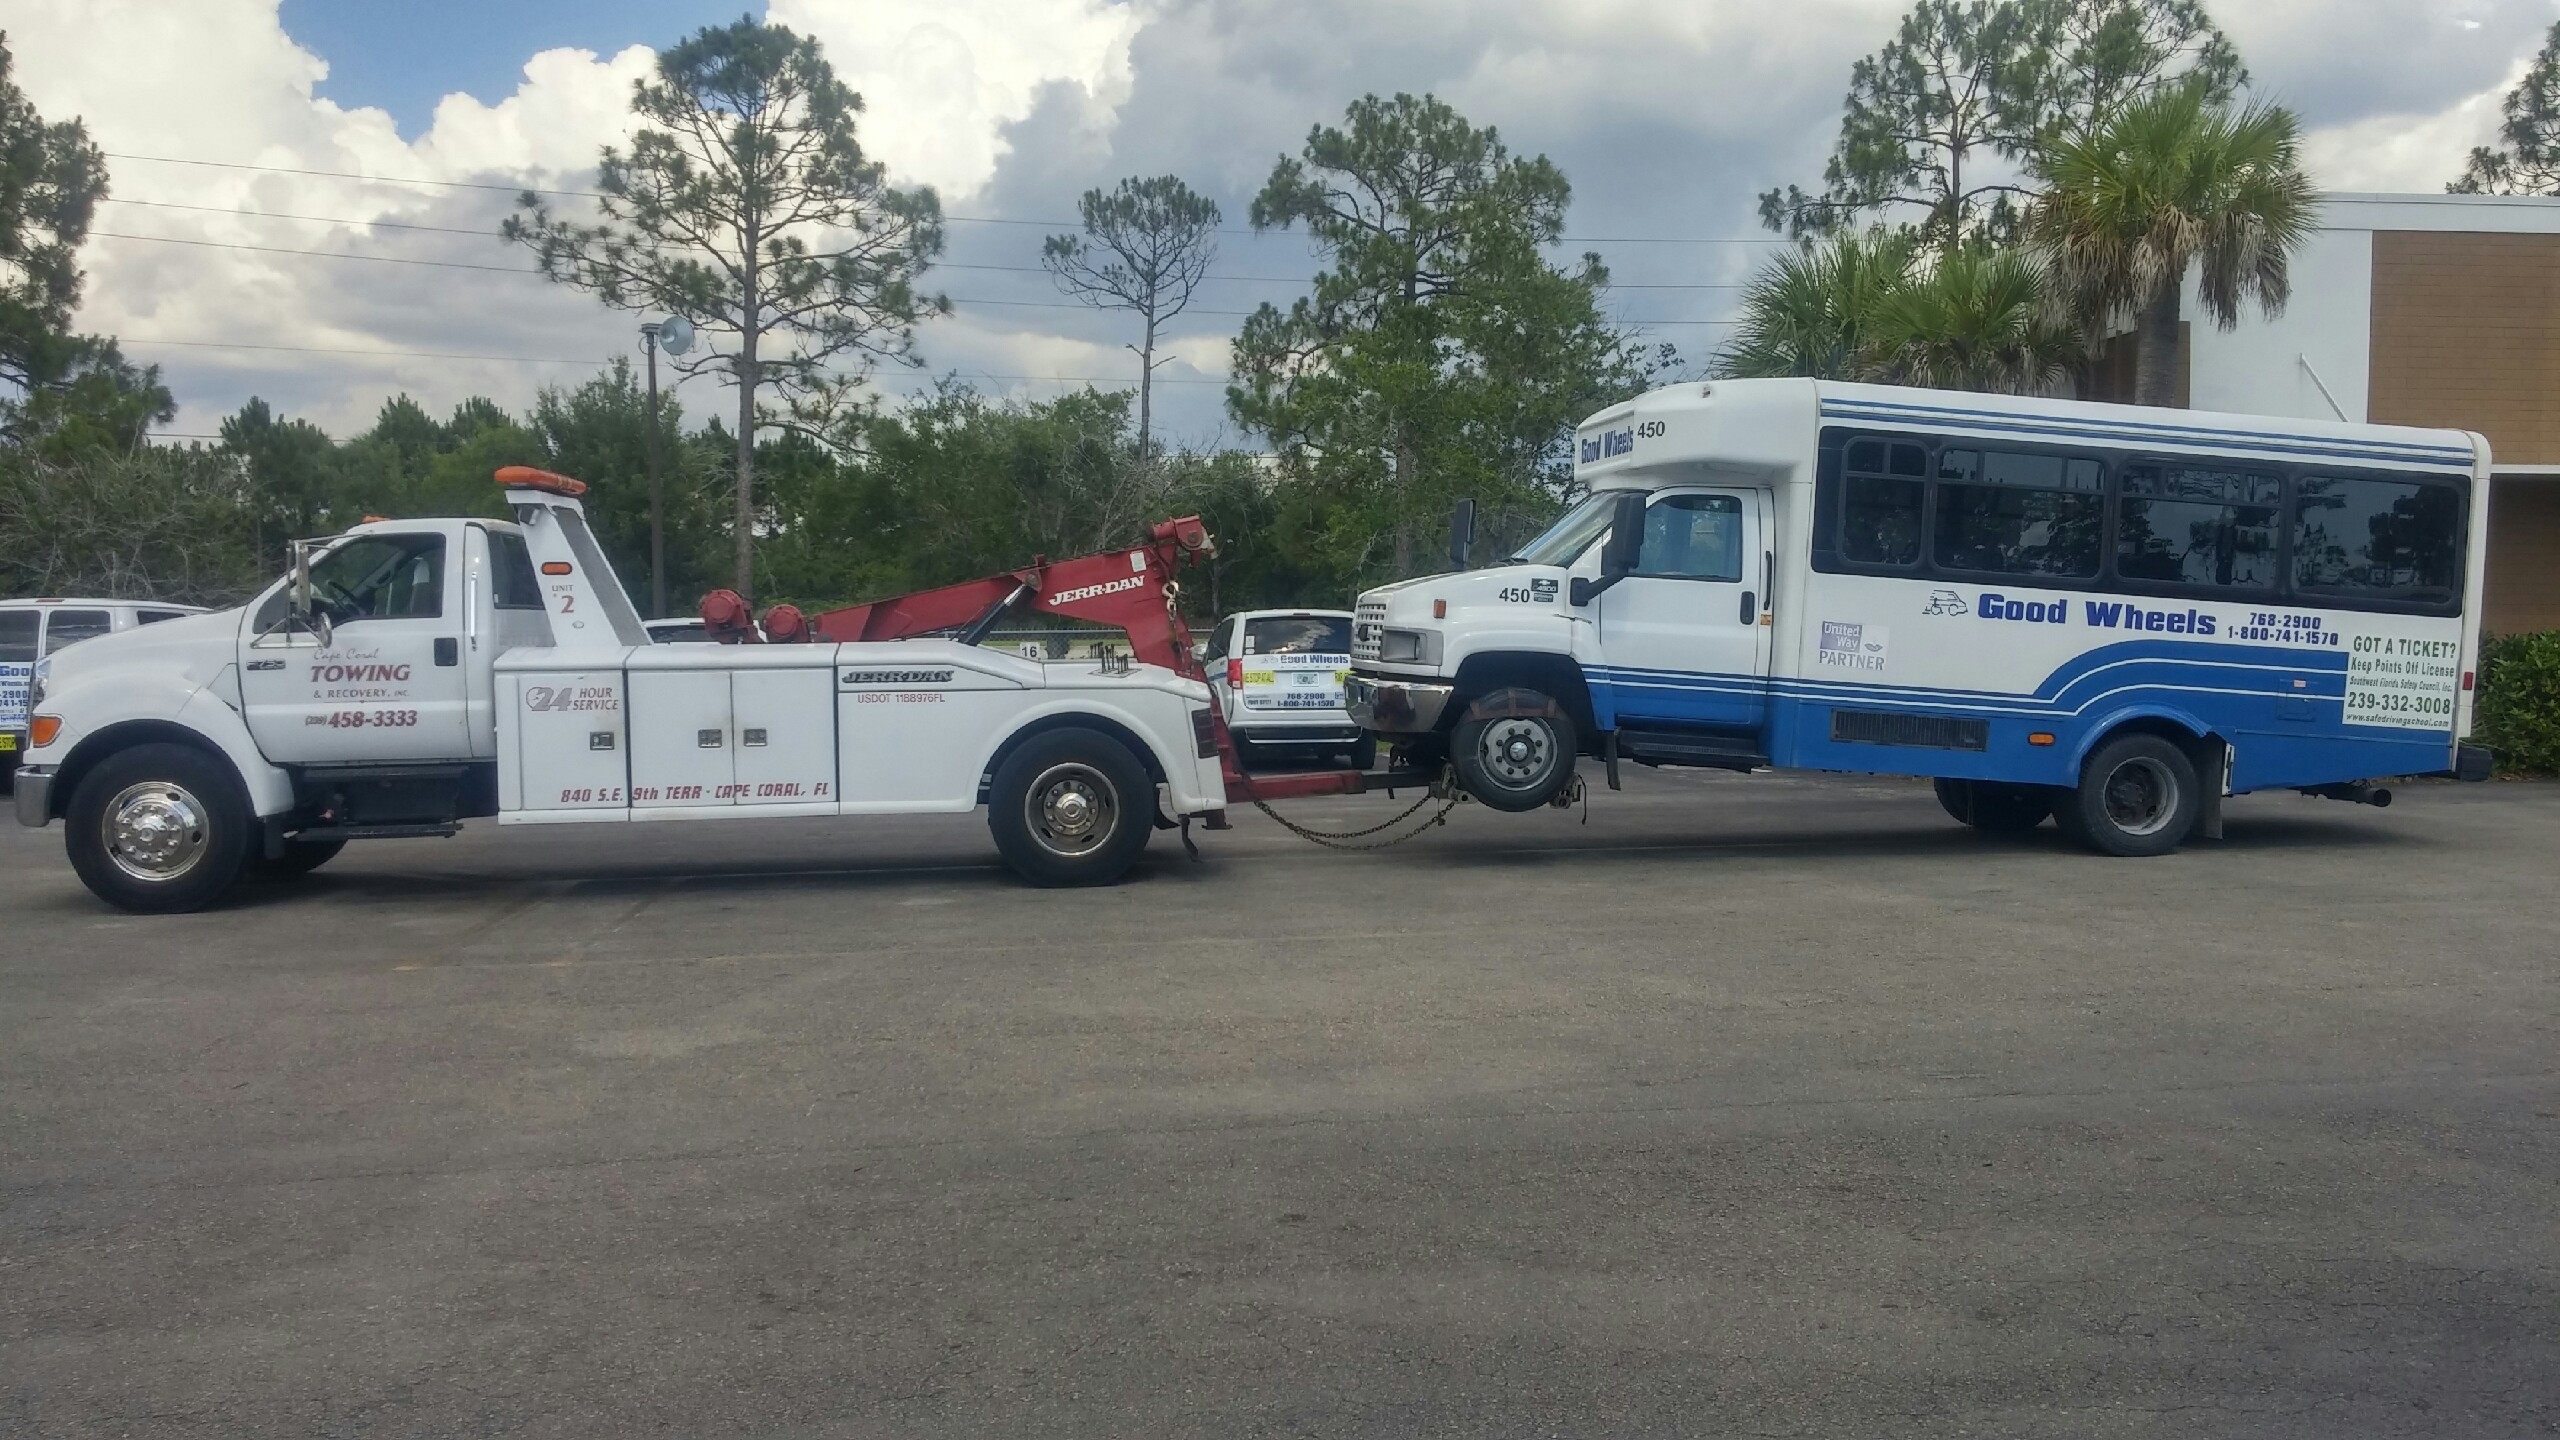 Emergency Towing Services in Lehigh Acres